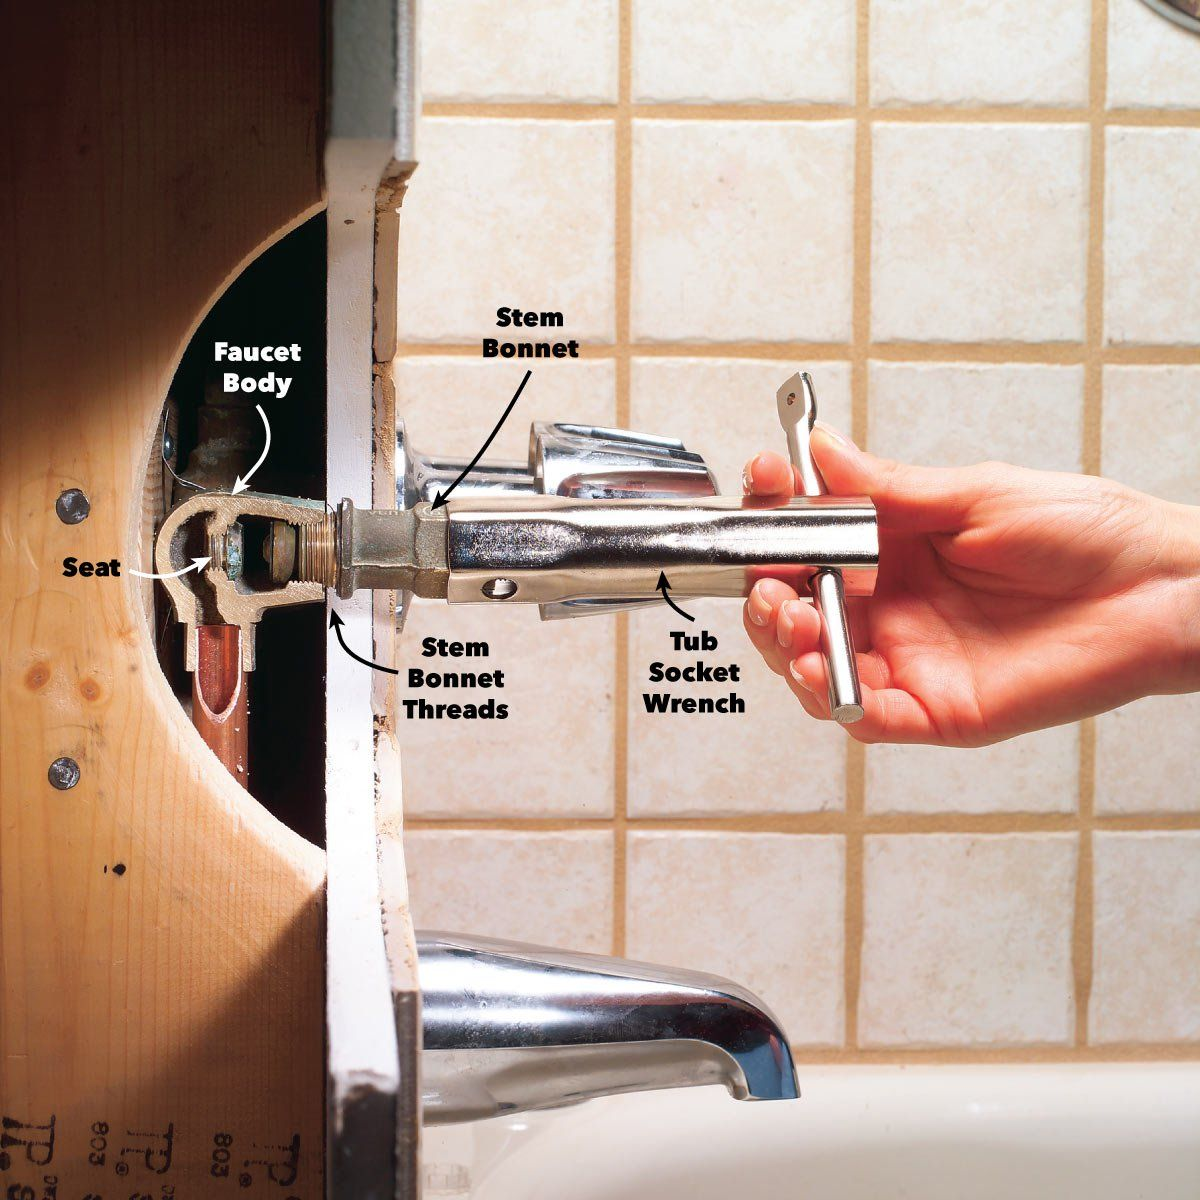 How To Fix A Leaking Bathtub Faucet Faucet Repair Bathtub